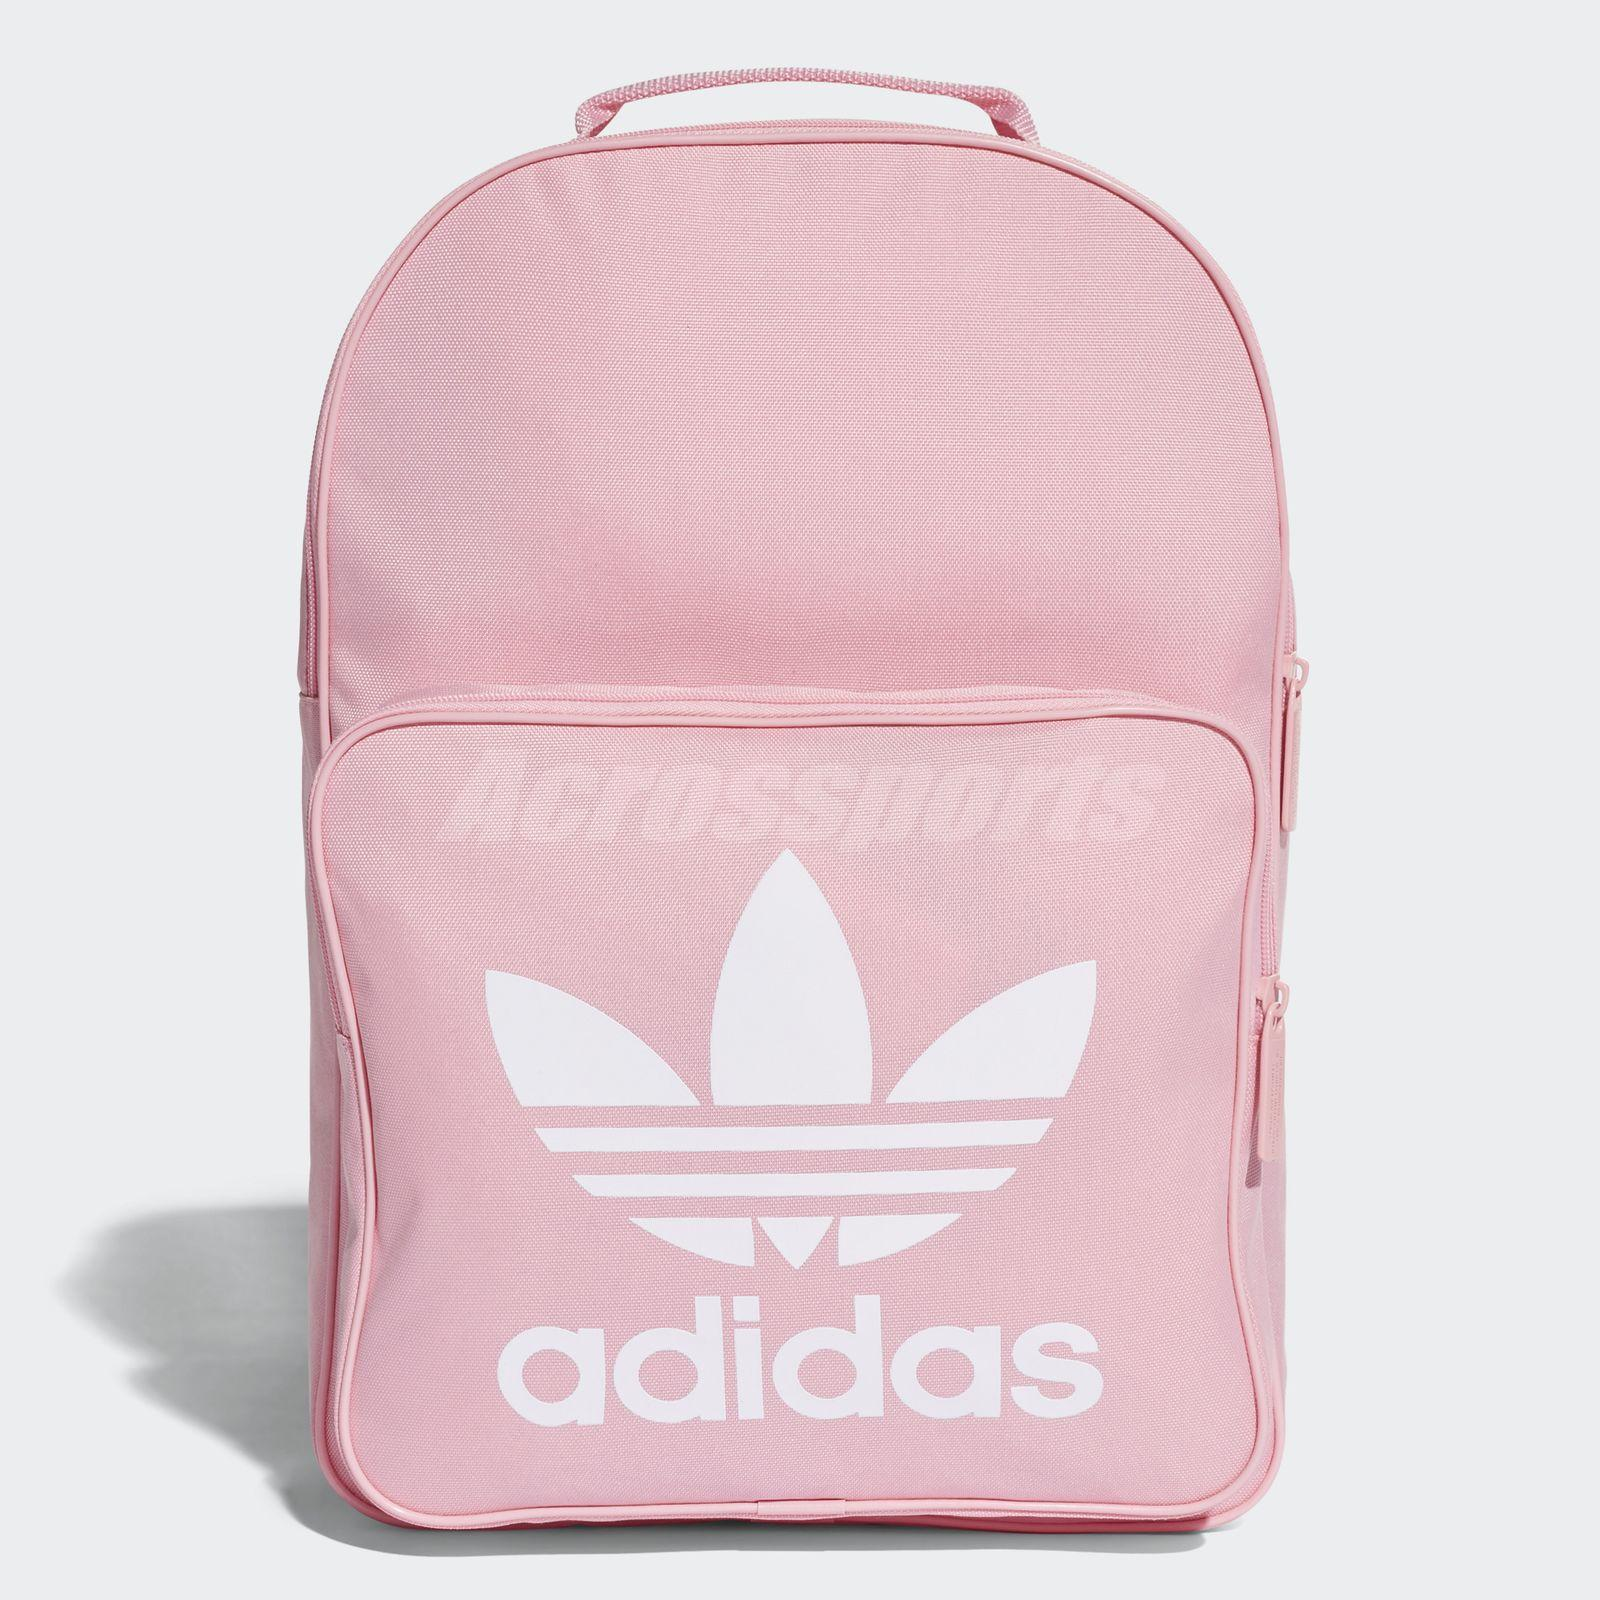 Details About Adidas Unisex Classic Trefoil Backpack Pink White Bookbag Sports Dj2173